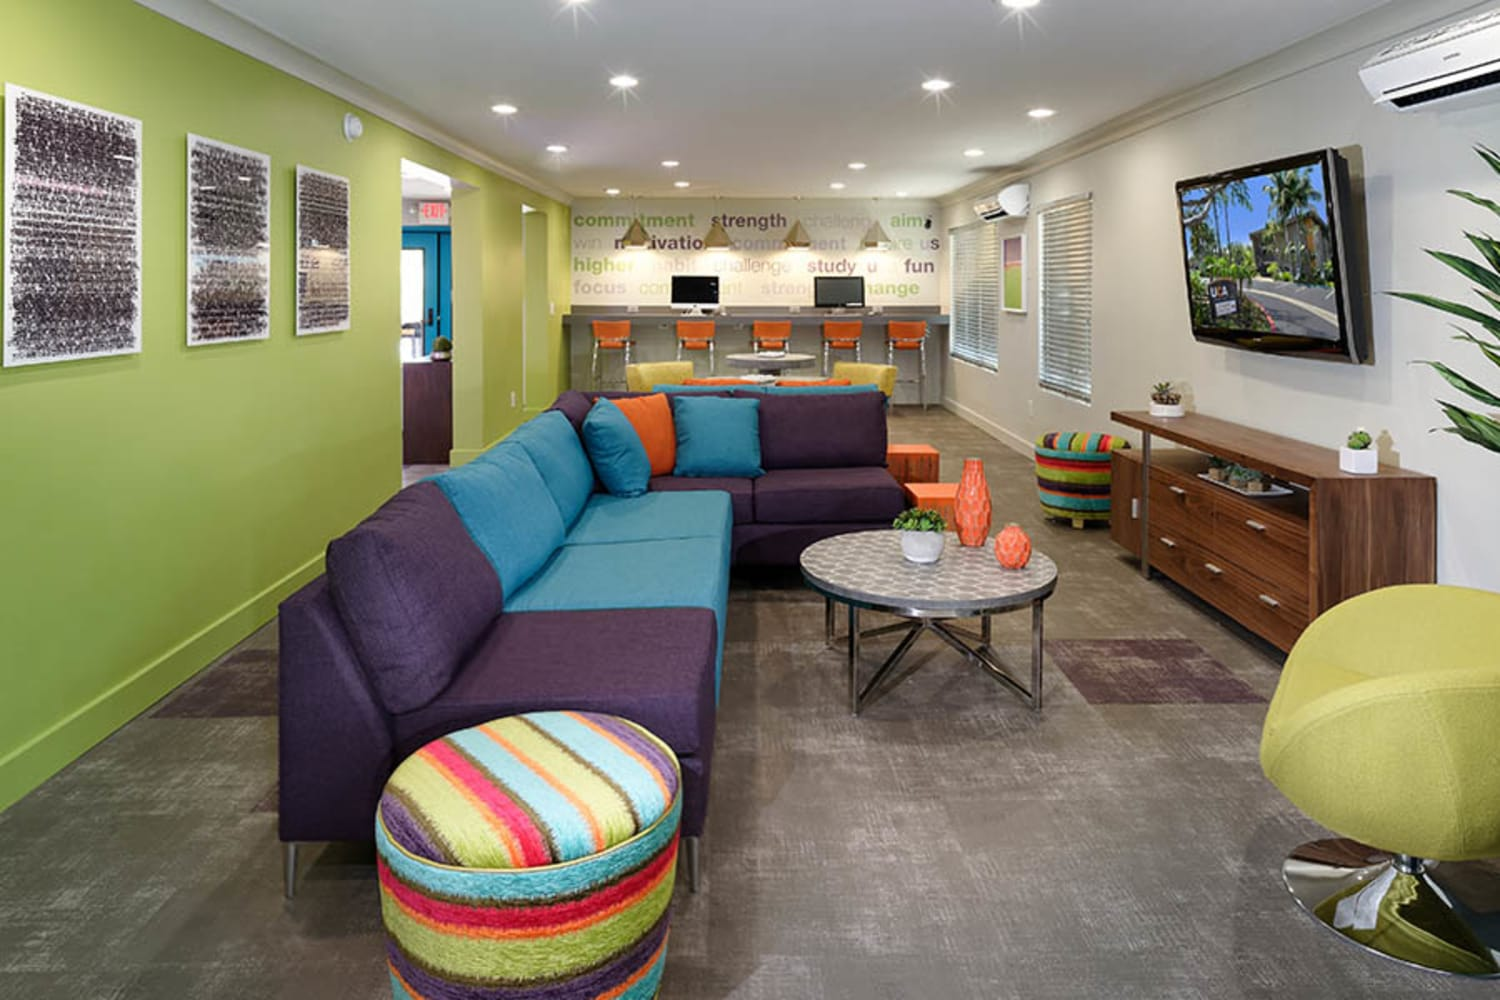 UCA Apartment Homes in Fullerton, California, offer a colorful and fun clubhouse